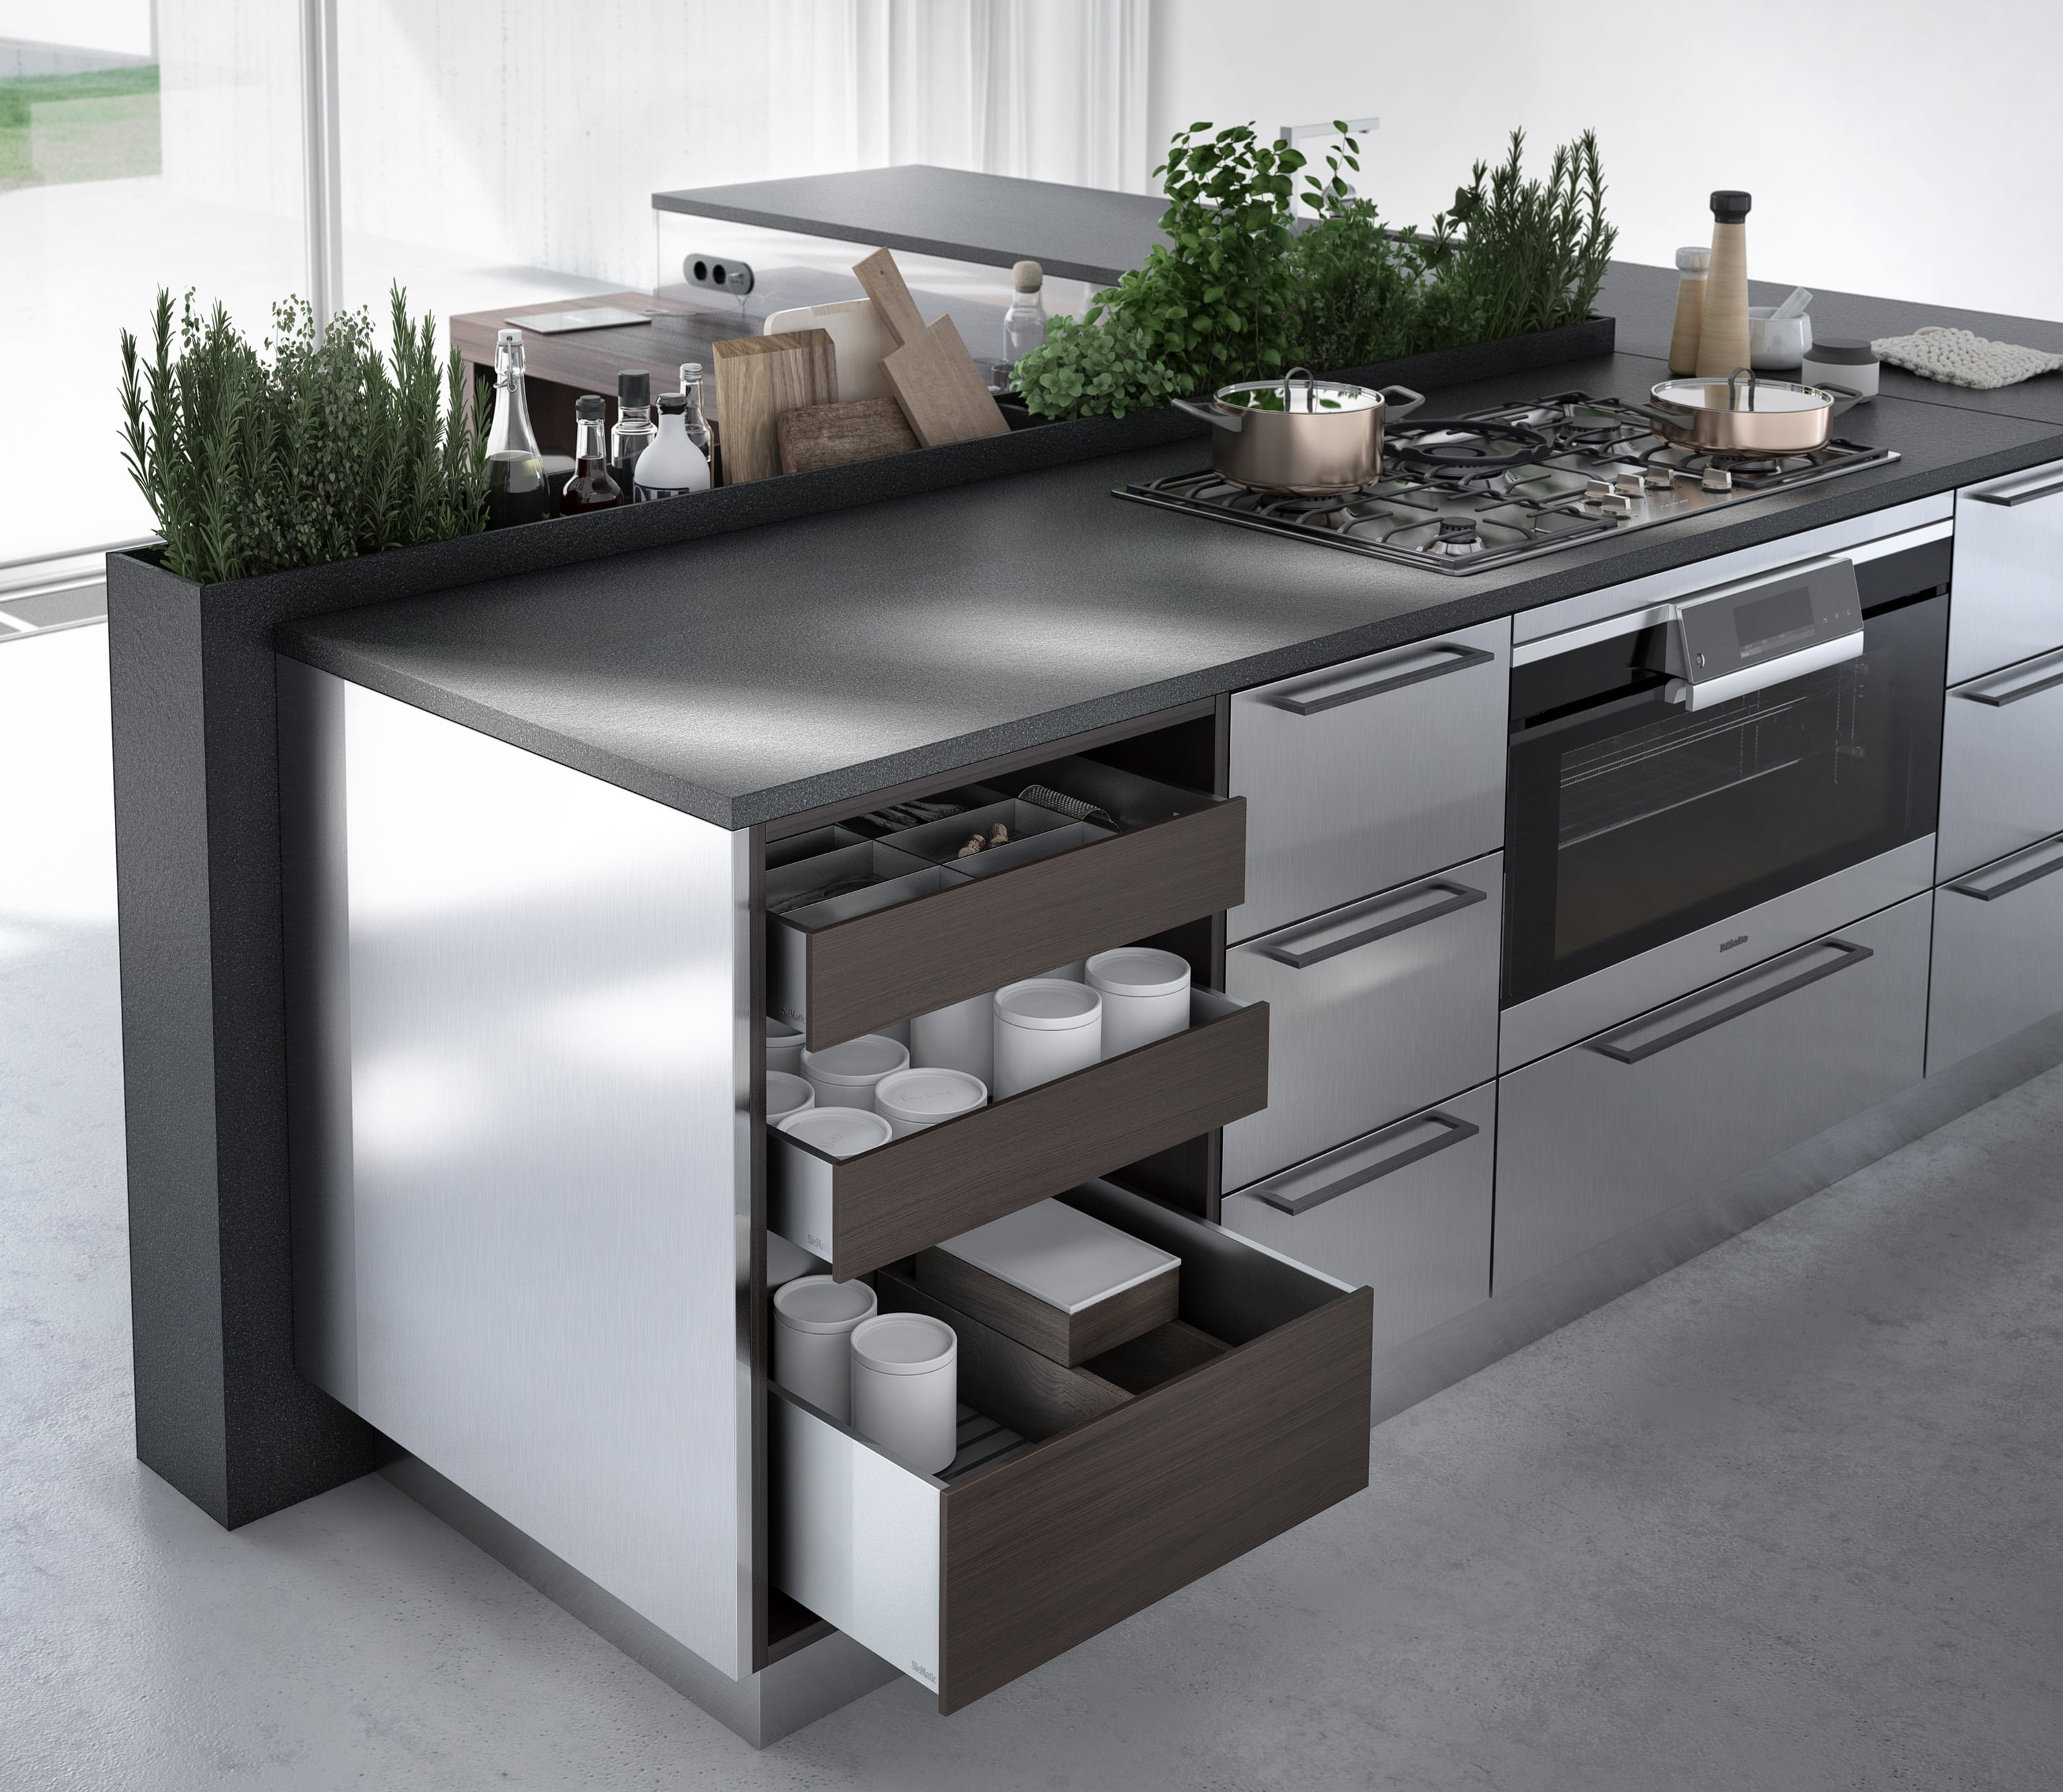 An urban kitchen with plants and wooden storage units